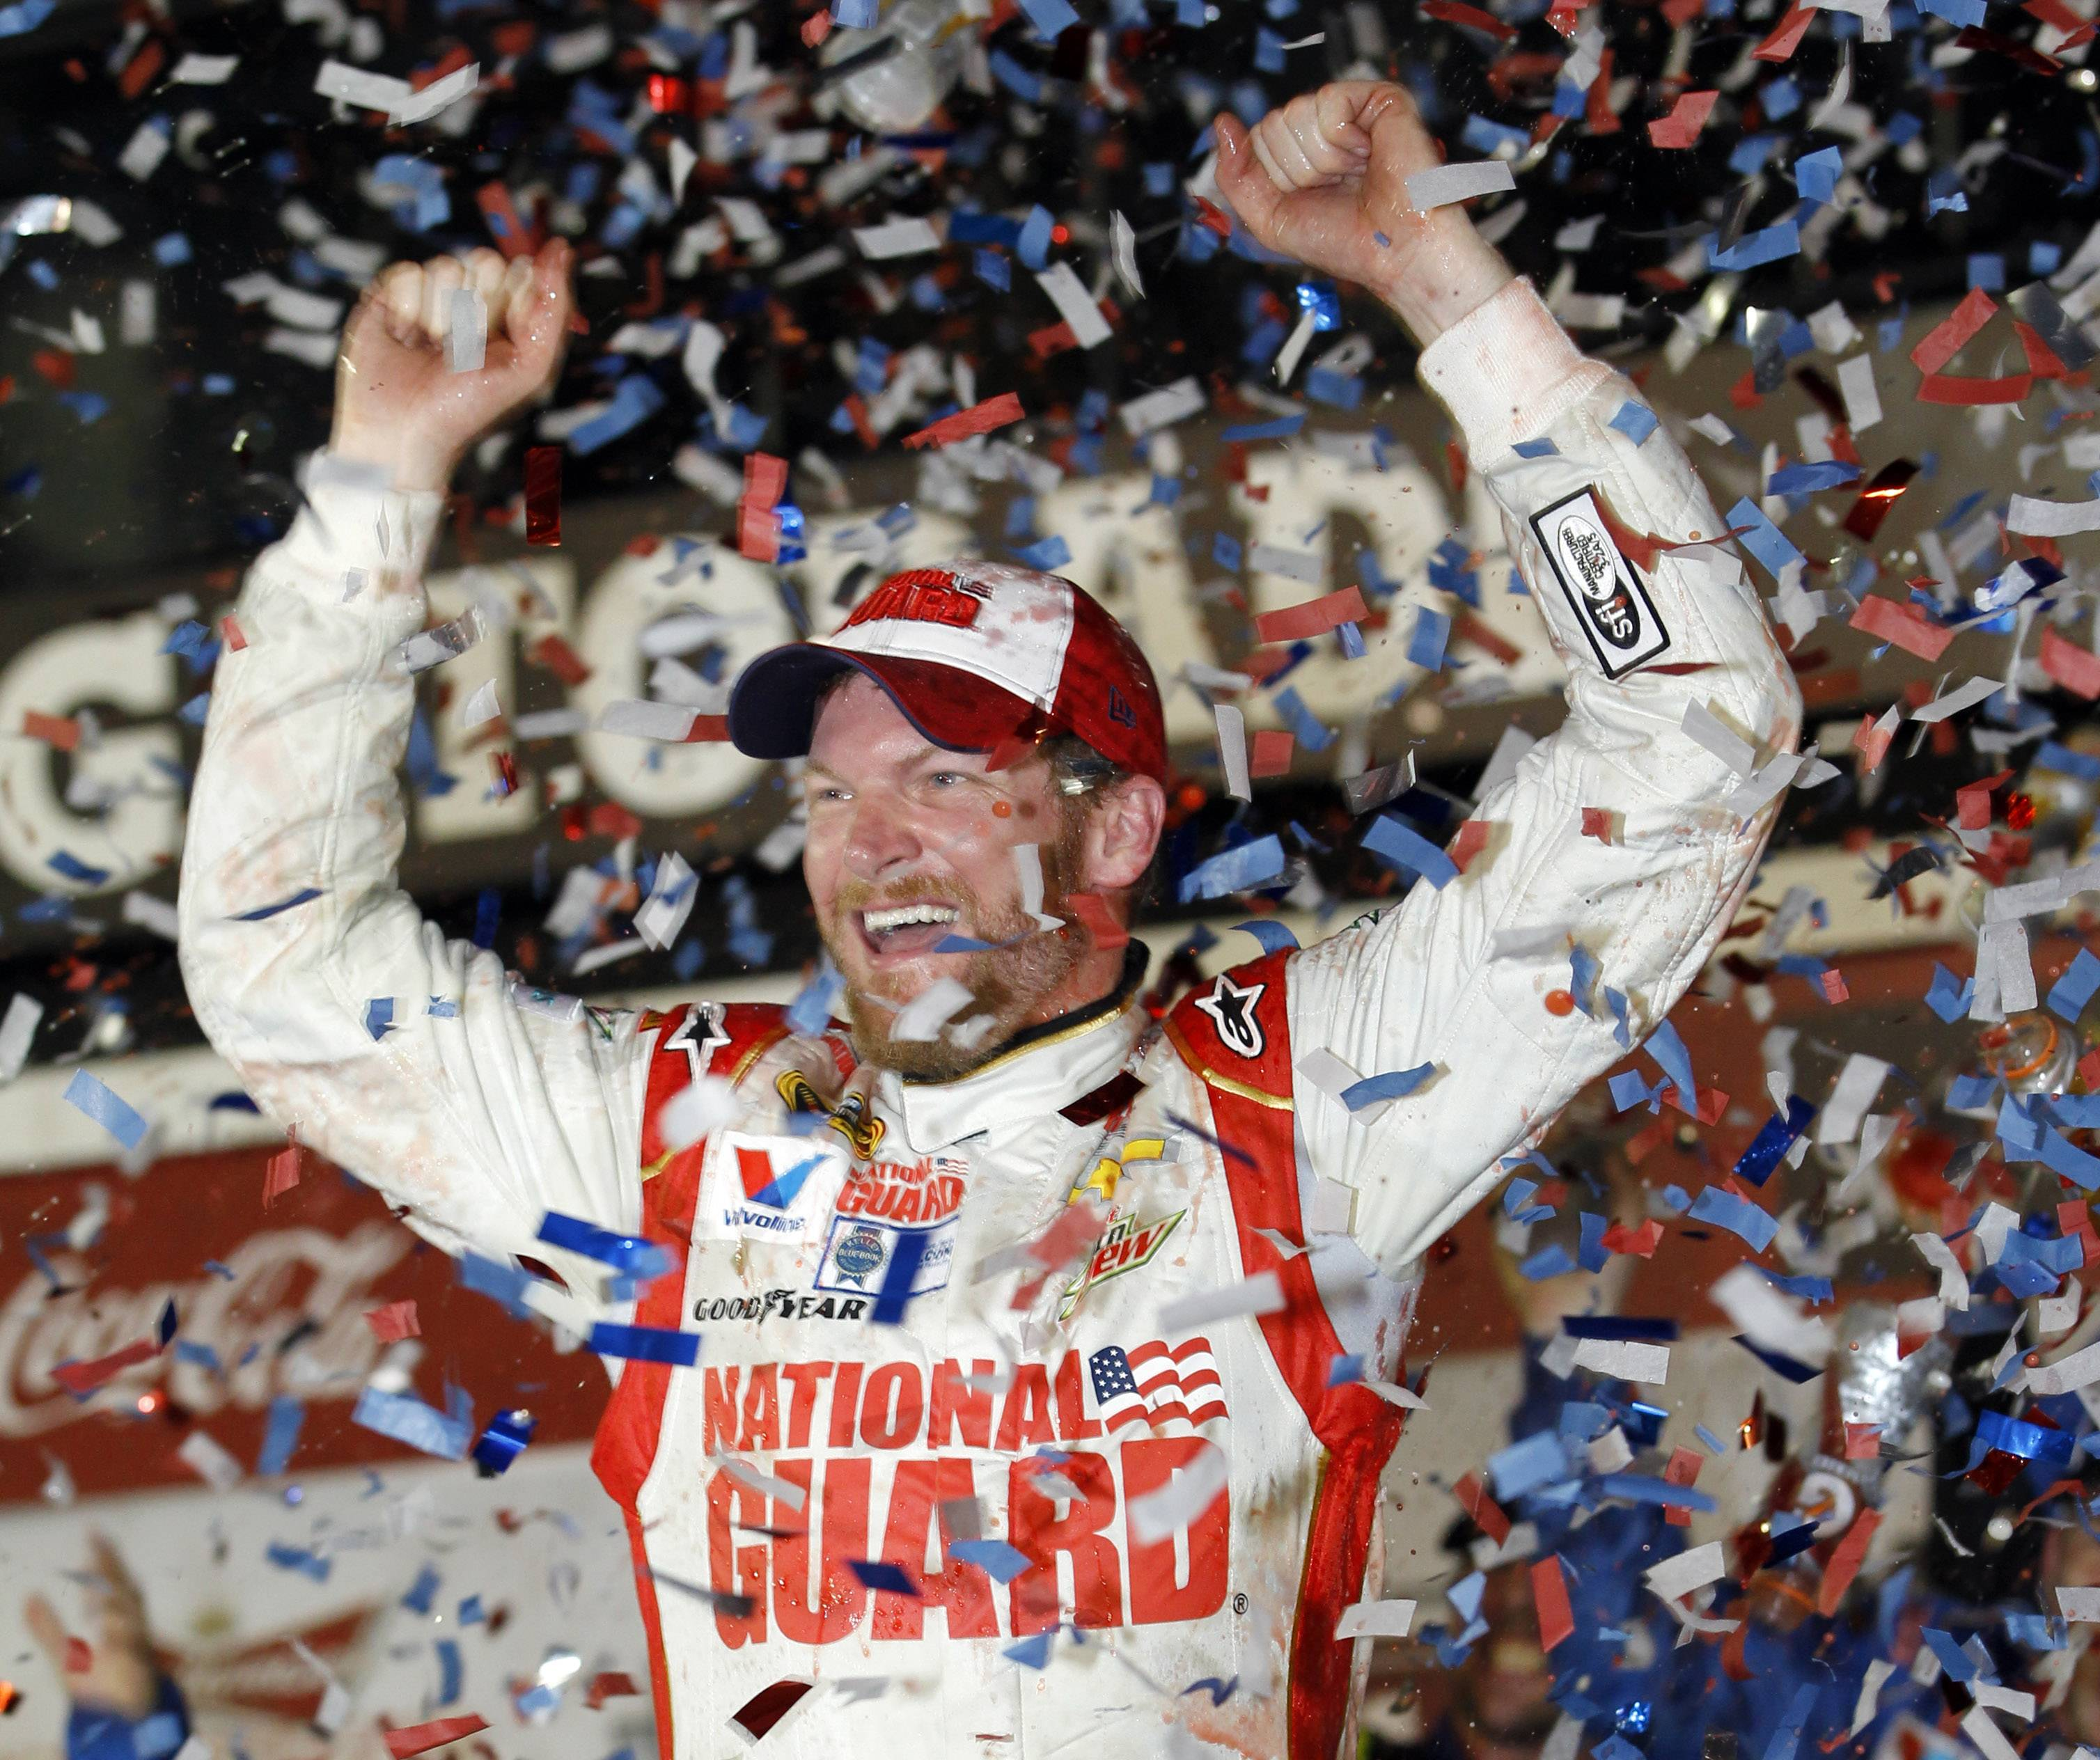 Dale Earnhardt Jr. celebrates in Victory Lane after winning the NASCAR Sprint Cup Series Daytona 500 on Sunday at Daytona International Speedway in Florida.